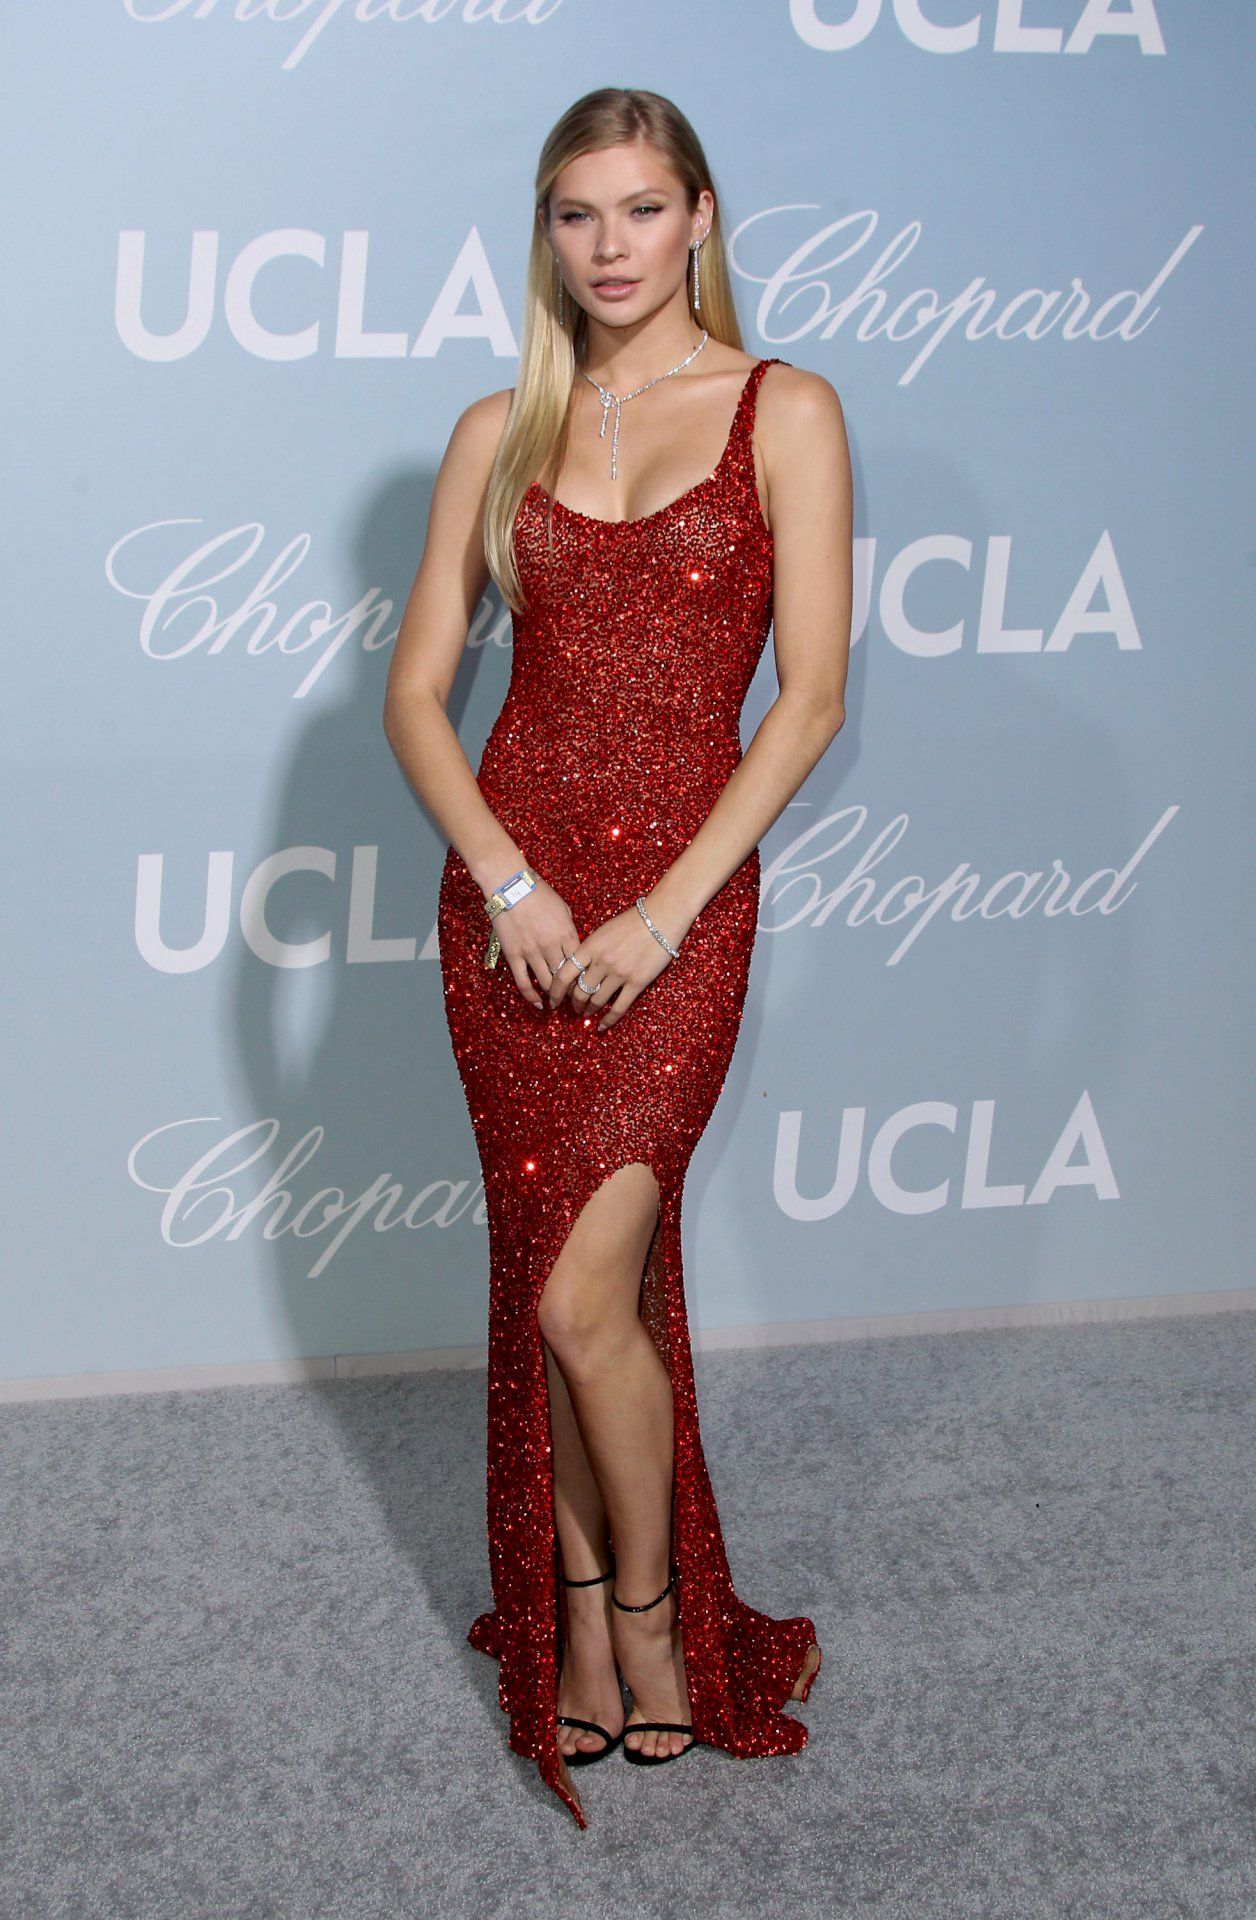 Josie Canseco Sexy In Red Dress